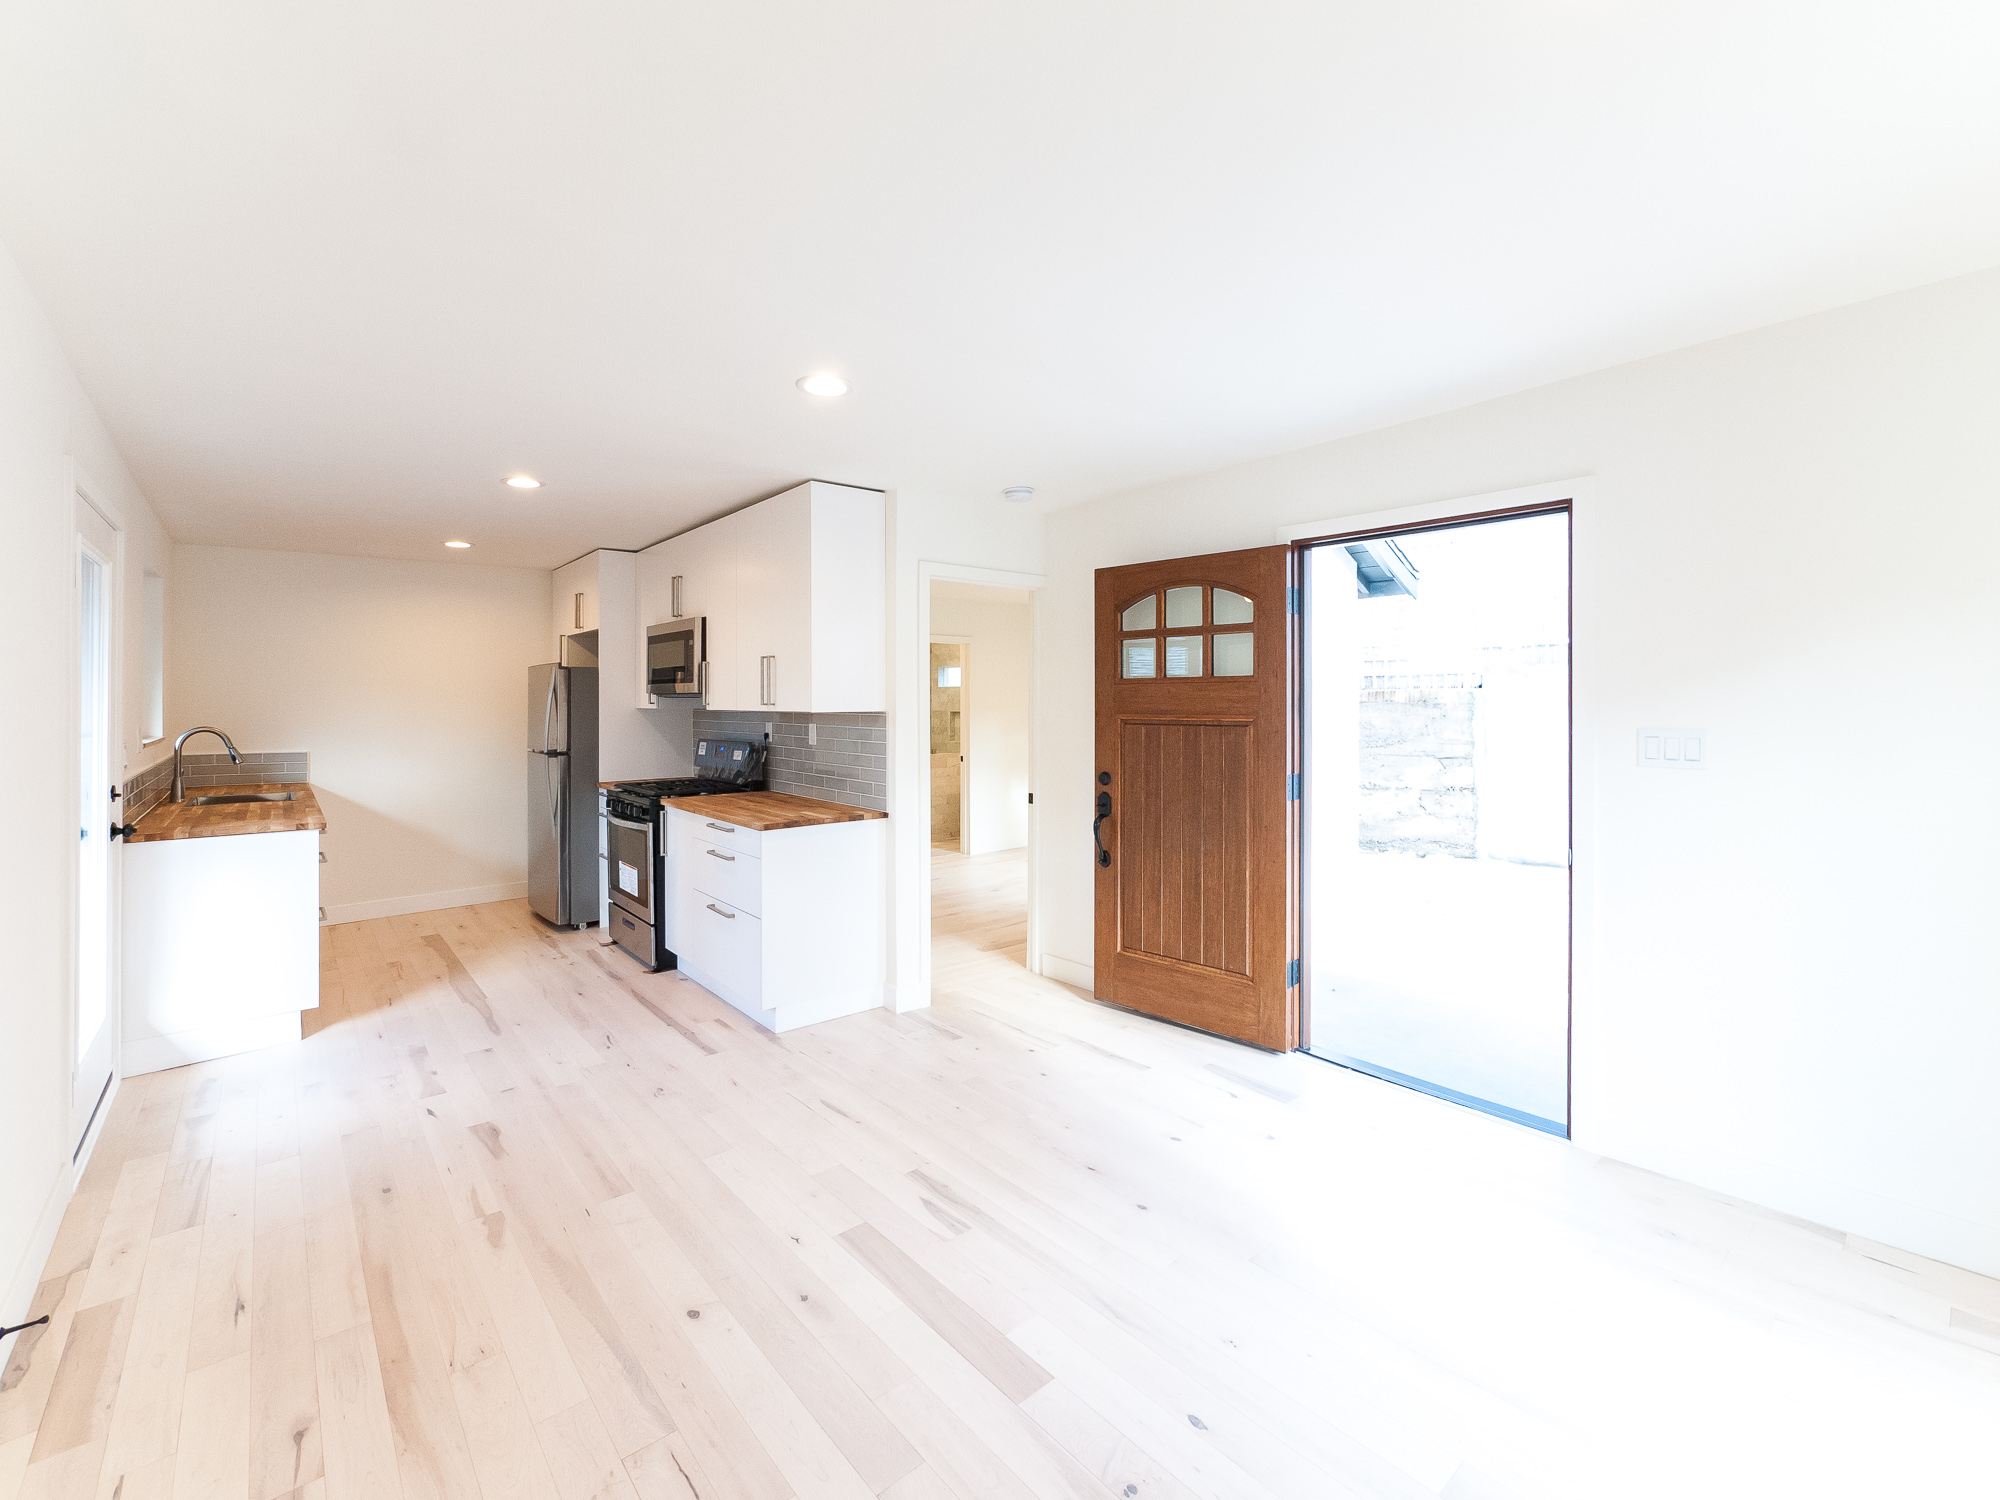 Gorgeously remodeled one bedroom apartment Duplex   Large Private Yard & Parking!   Boyle Heights